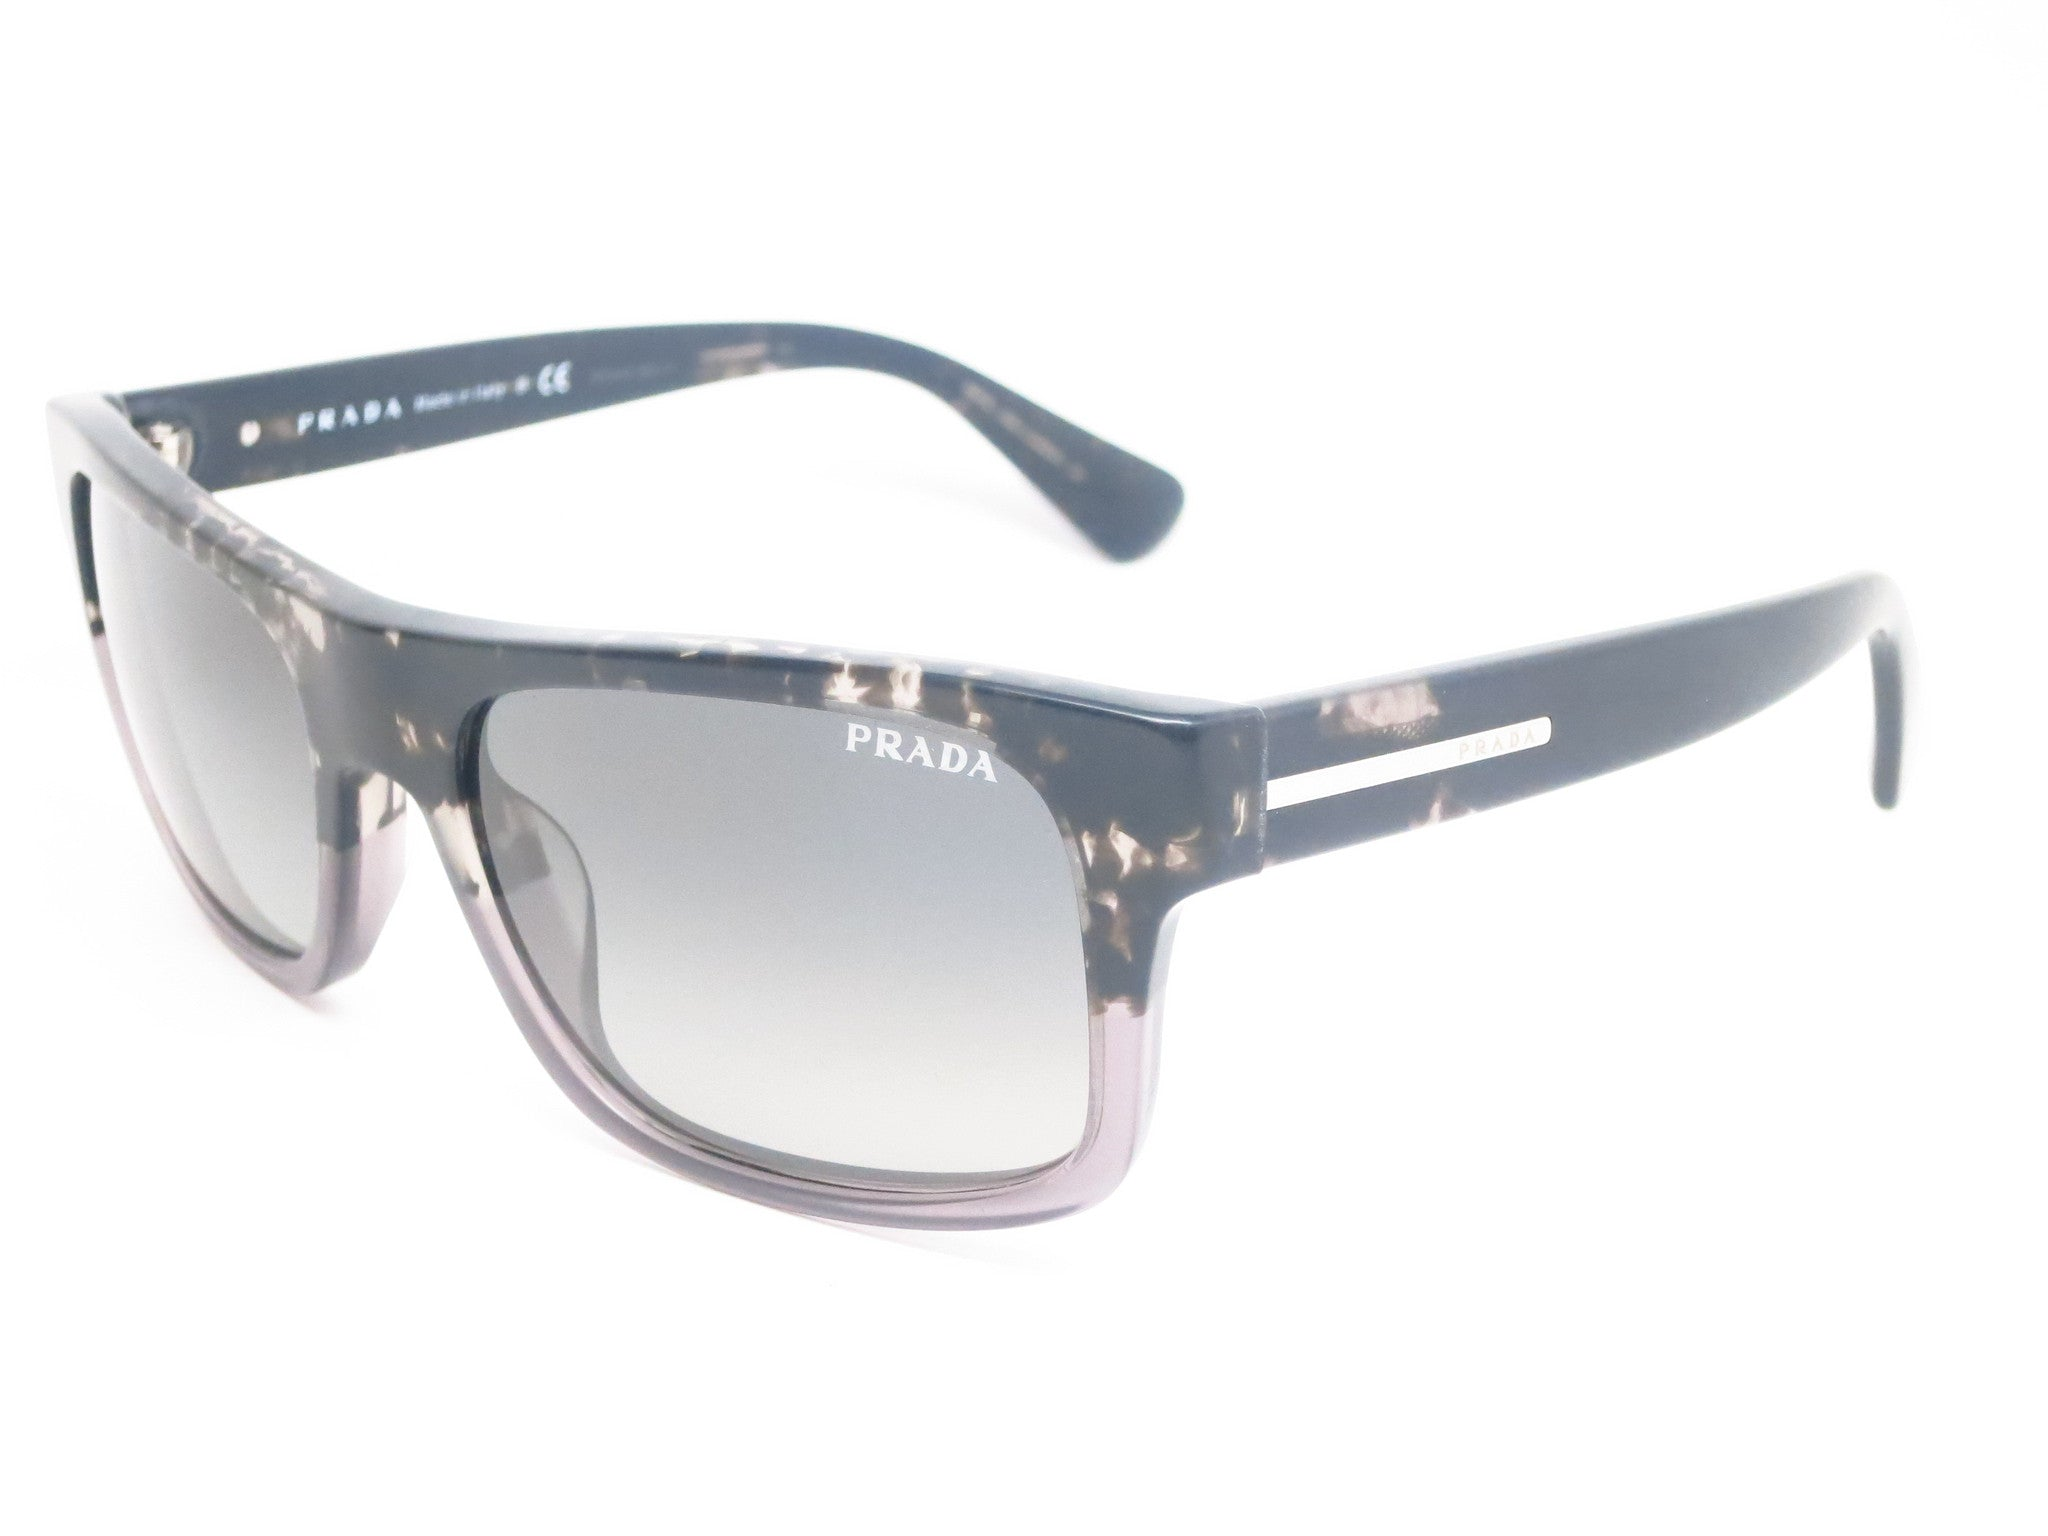 6f37ee0b367 Prada SPR 18P RO3-2D0 Spotted Black   Matte Grey Sunglasses - Eye Heart  Shades ...